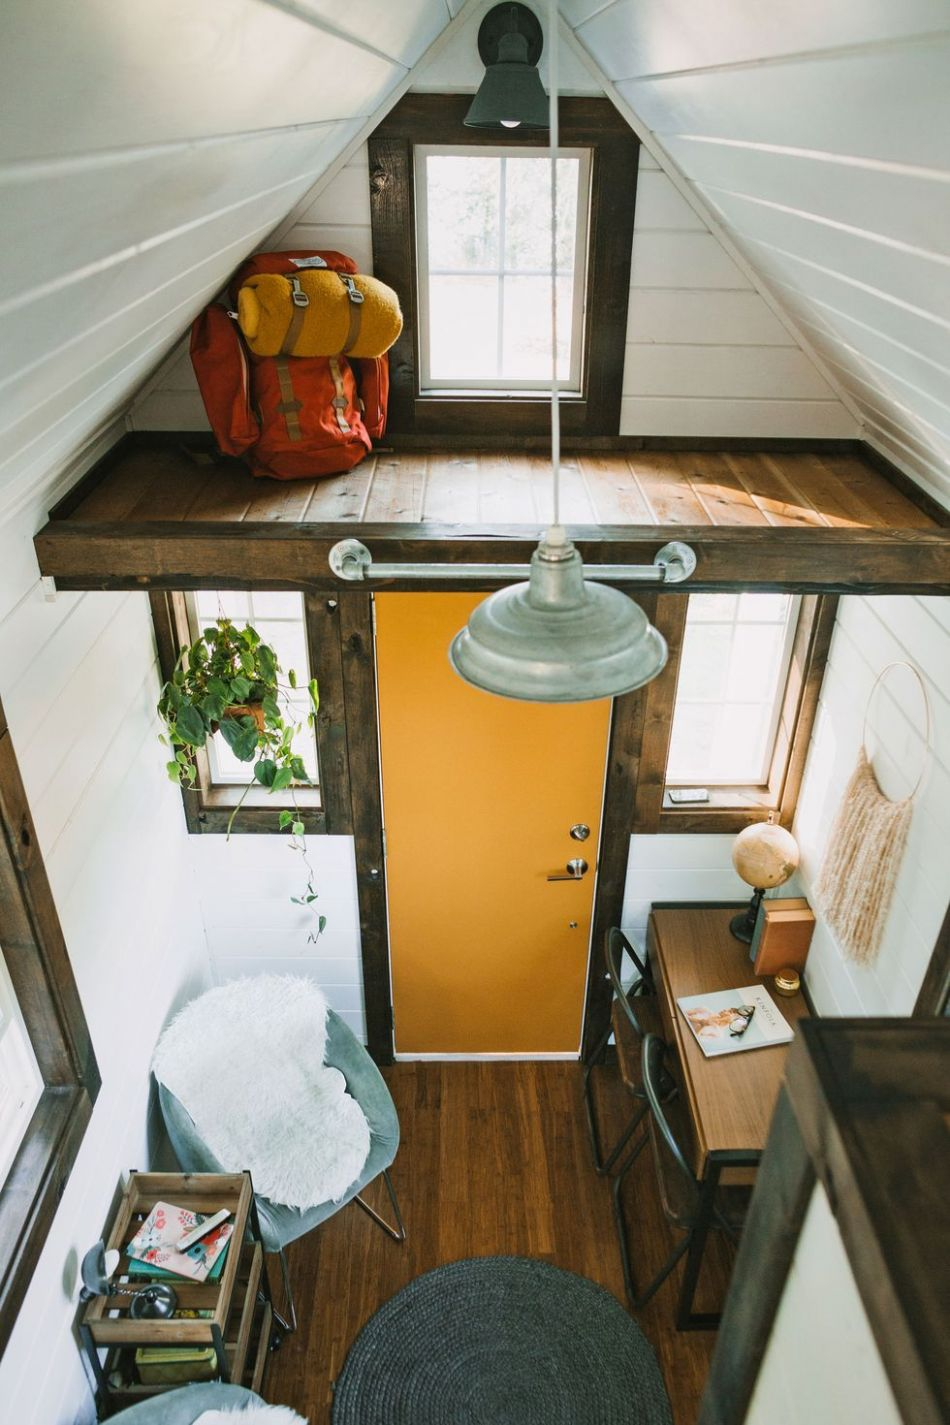 12 Best Tiny Houses 12 - Small House Pictures & Plans - tiny house design